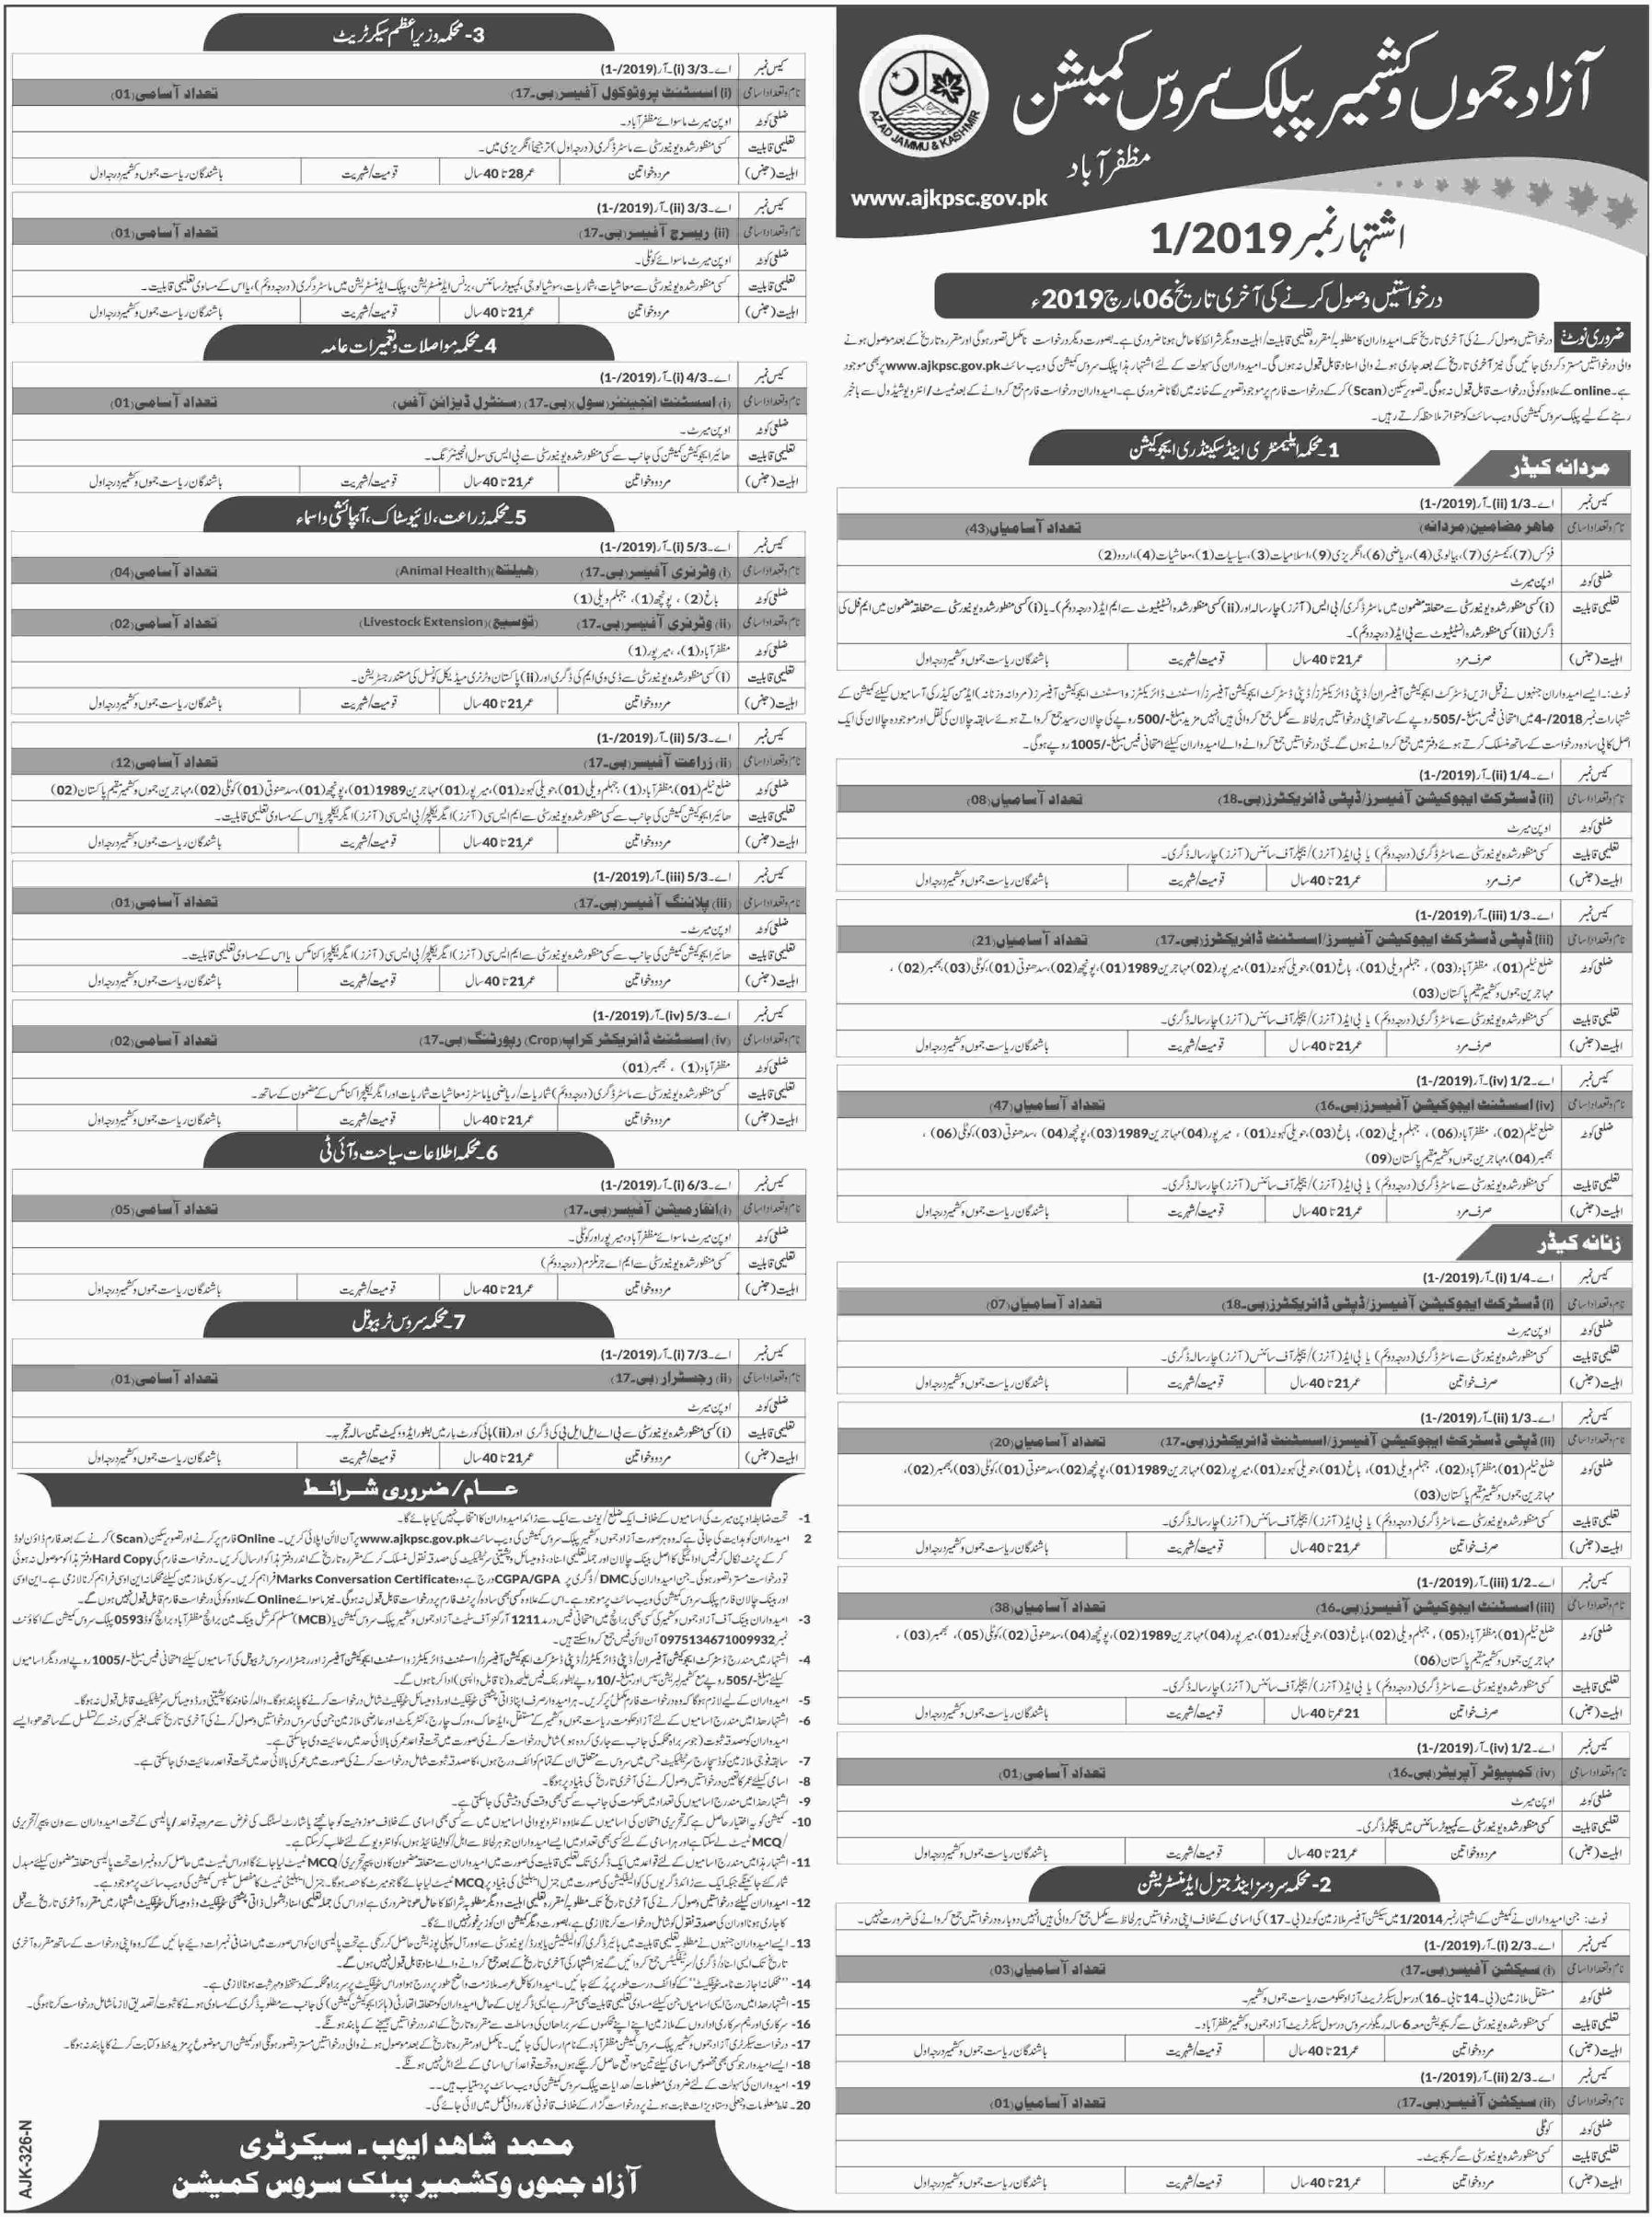 AJKPSC Jobs 2019 Azad Jammu & Kashmir Public Service Commission Latest